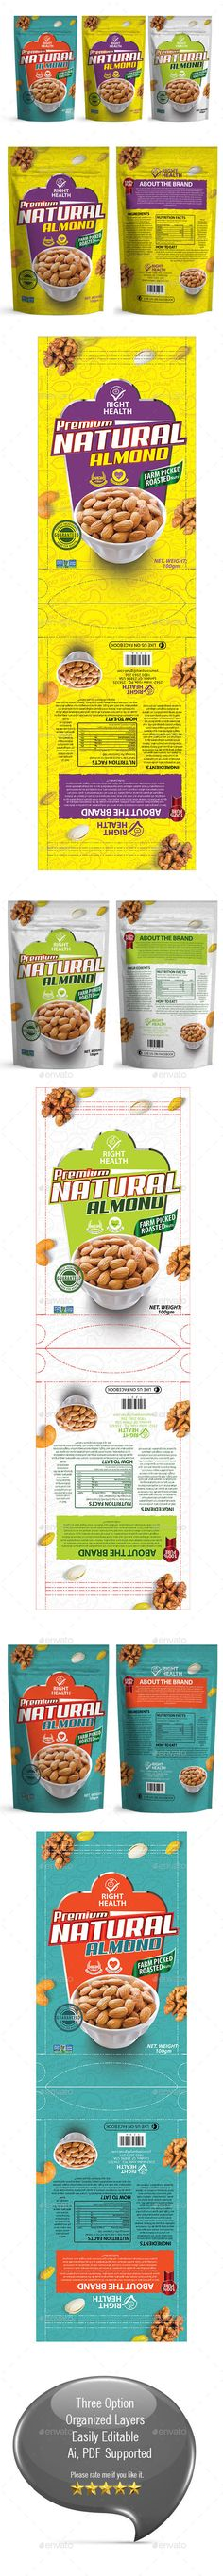 Dry Fruits Packaging Template Vol 001 - #Packaging Print #Templates Download here: https://graphicriver.net/item/dry-fruits-packaging-template-vol-001/19189417?ref=alena994